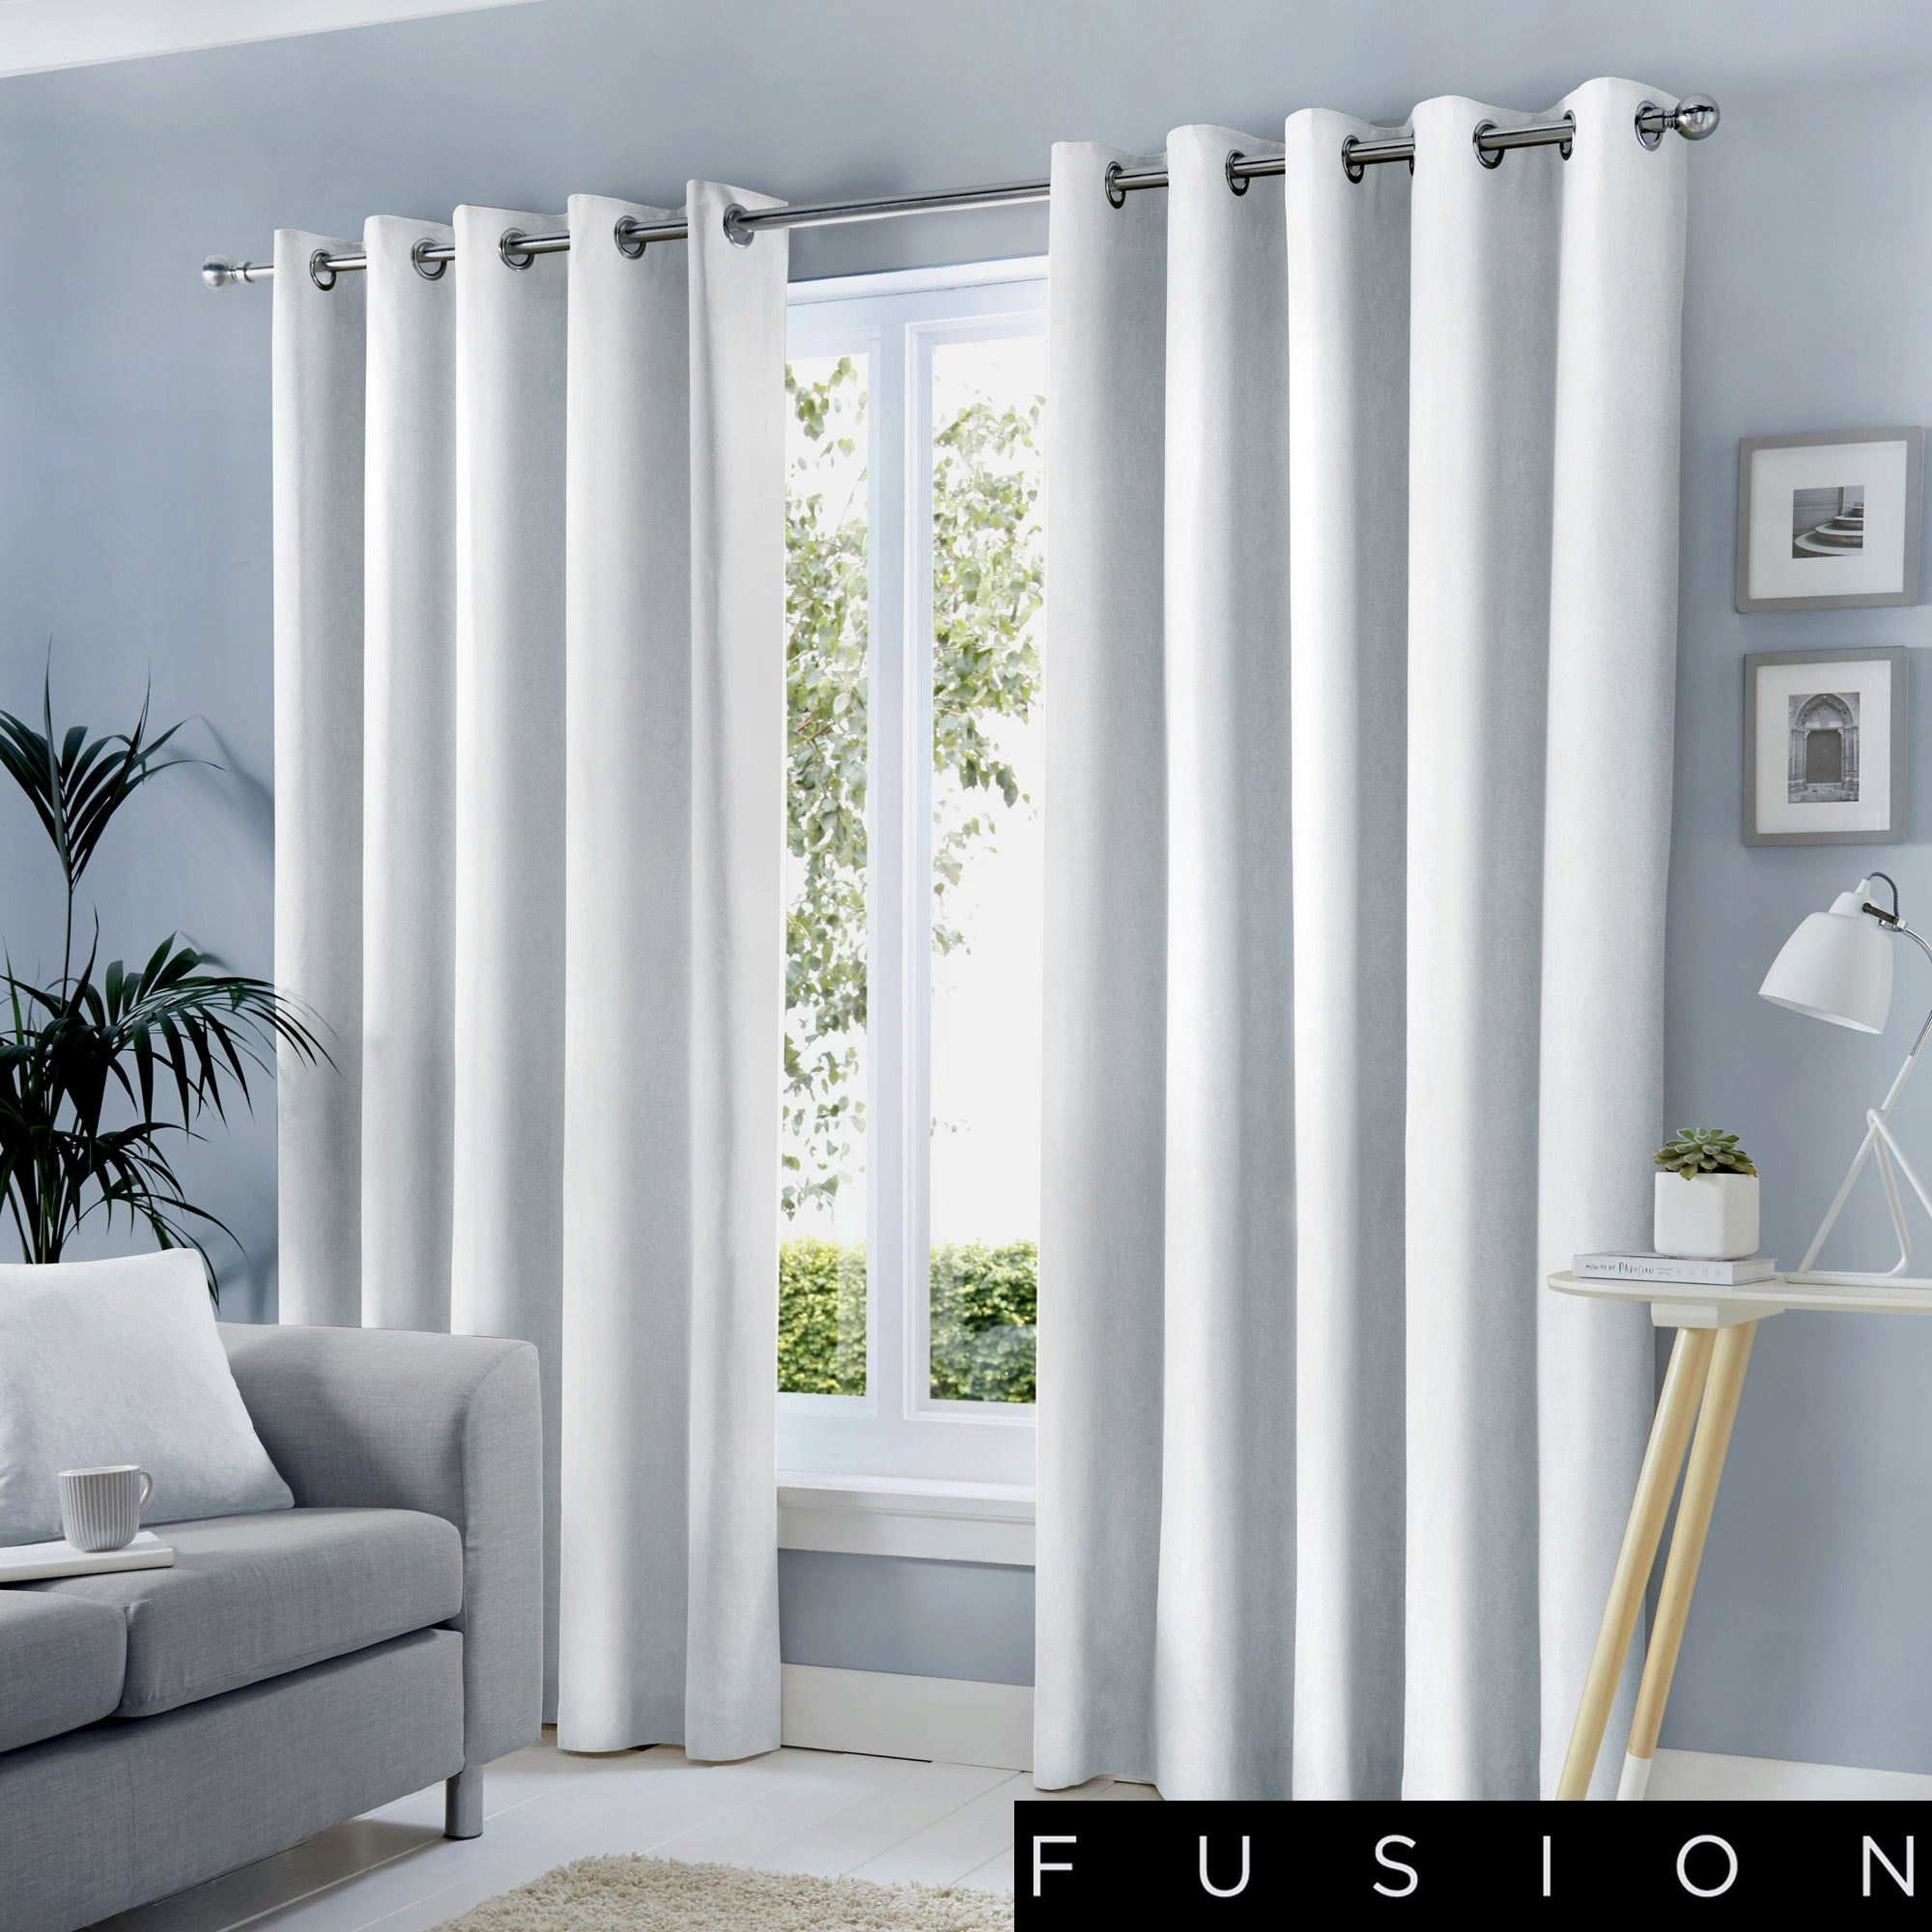 Sorbonne - 100% Cotton Lined Eyelet Curtains in White - by Fusion